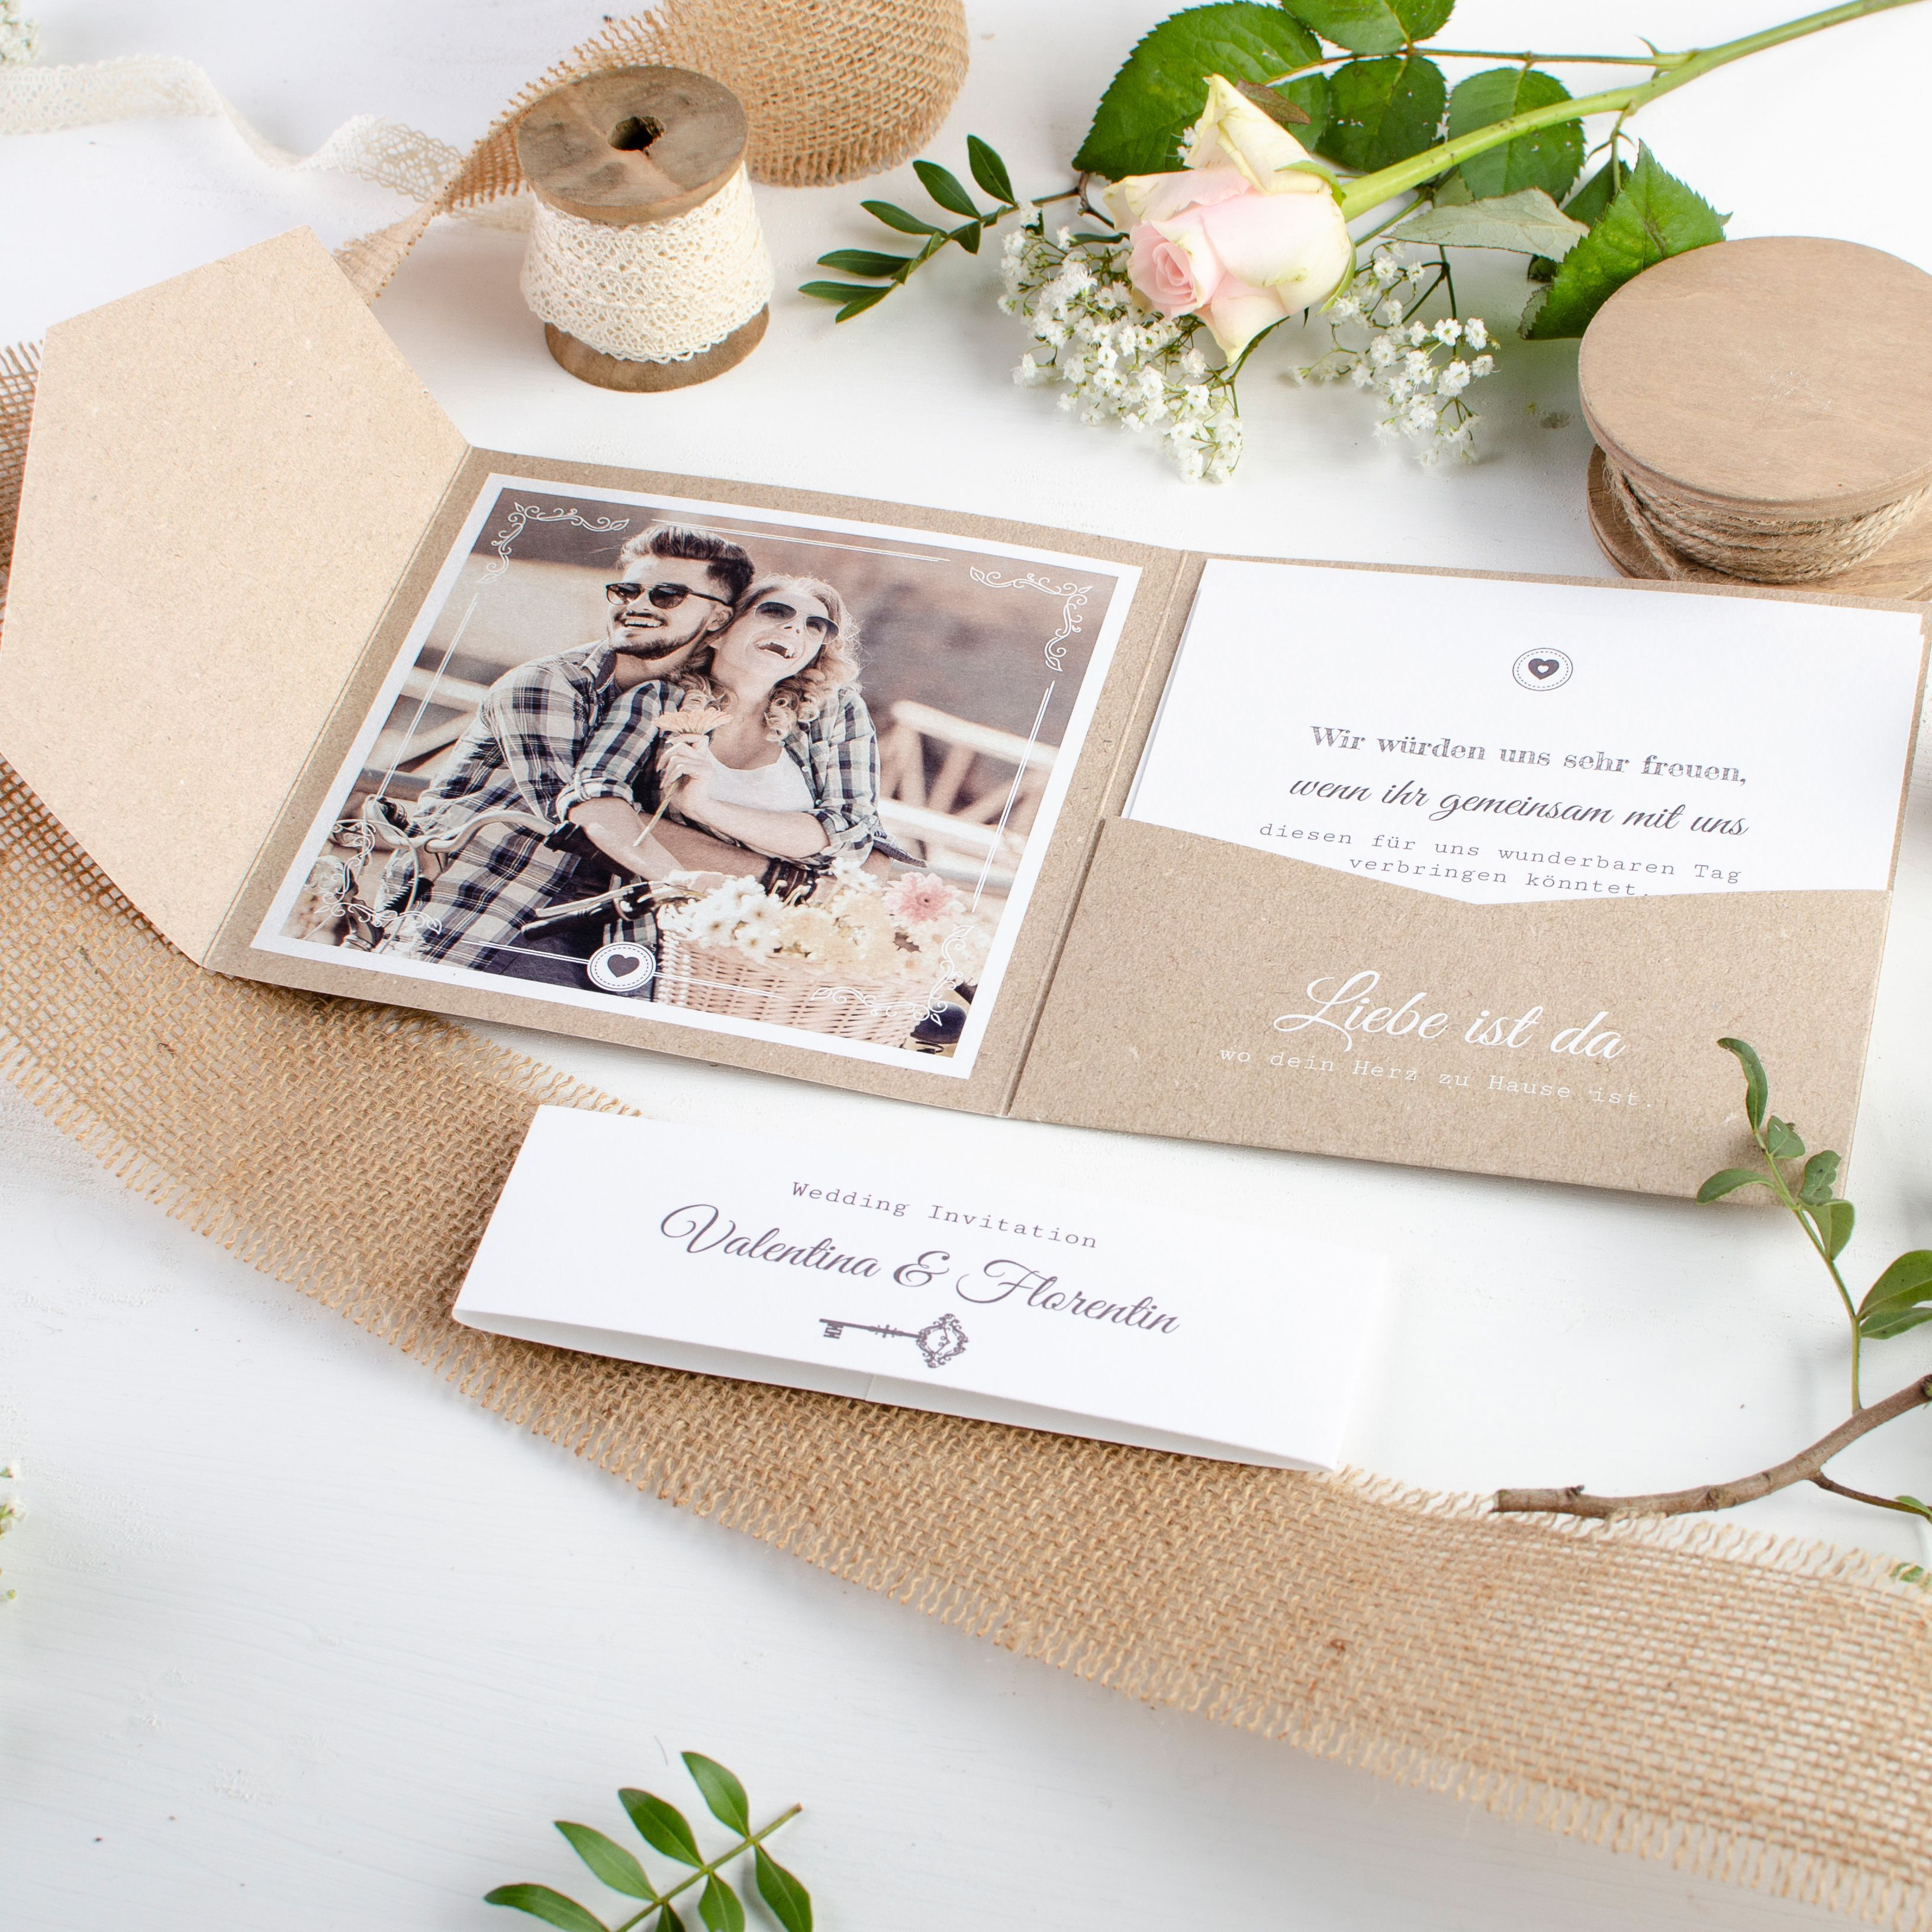 Photo of Invitation to the wedding as a pocket fold with a key motif